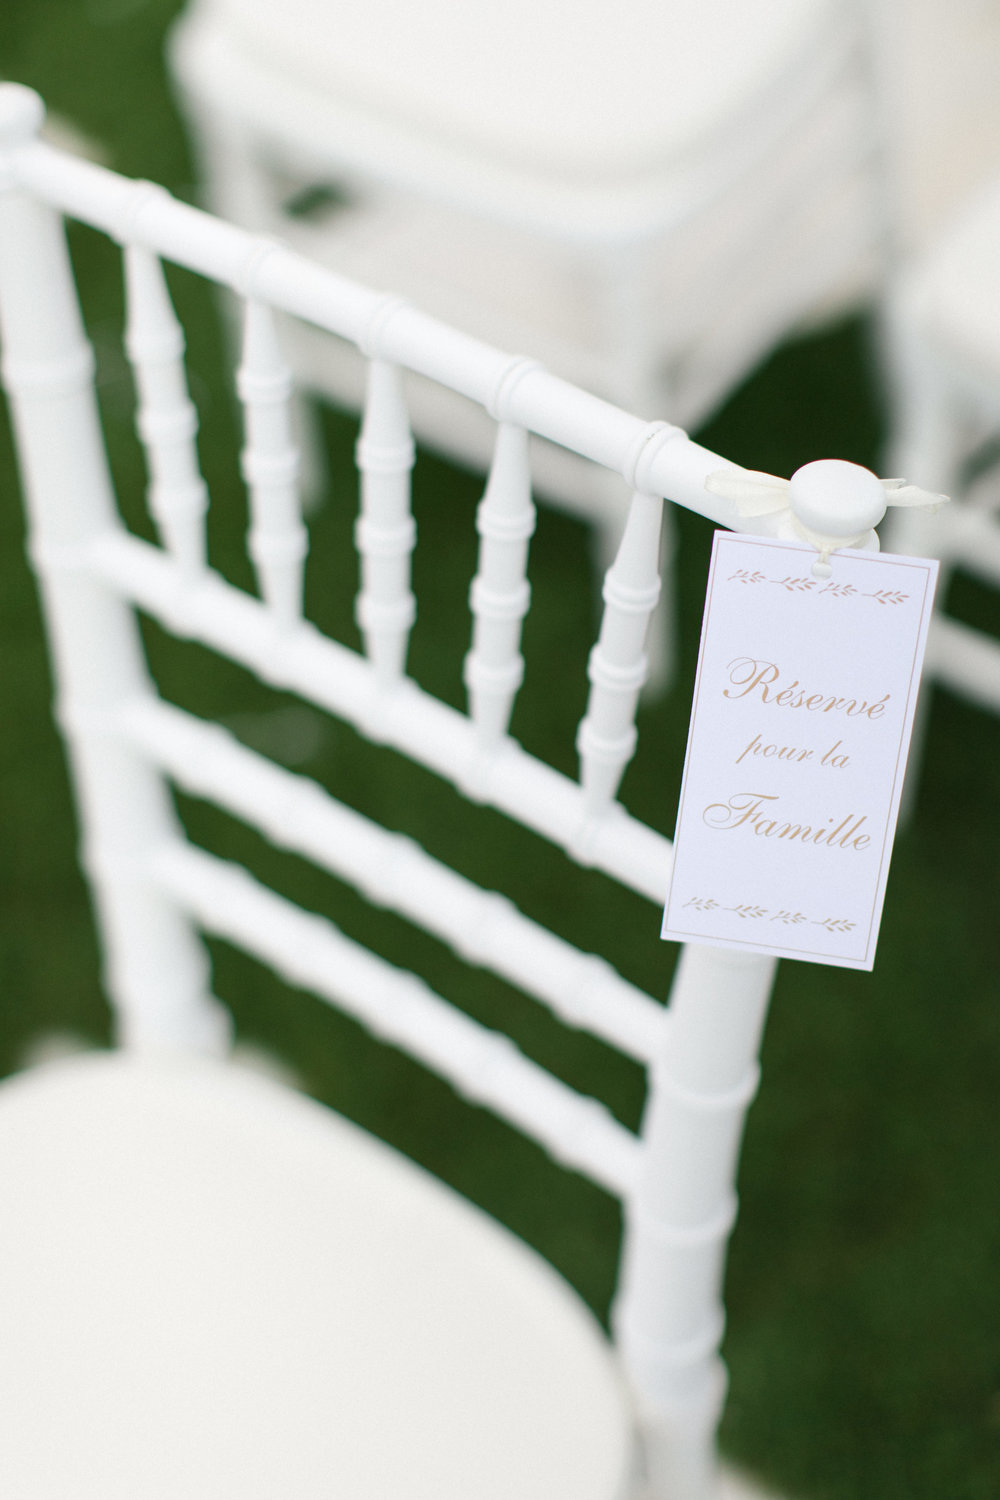 chuppah-chuppa-huppah-bridal-canopy-jewish-ceremony-floral-decoration-couple-bride-groom-reserved-for-family-event-planning-silkentile-greece